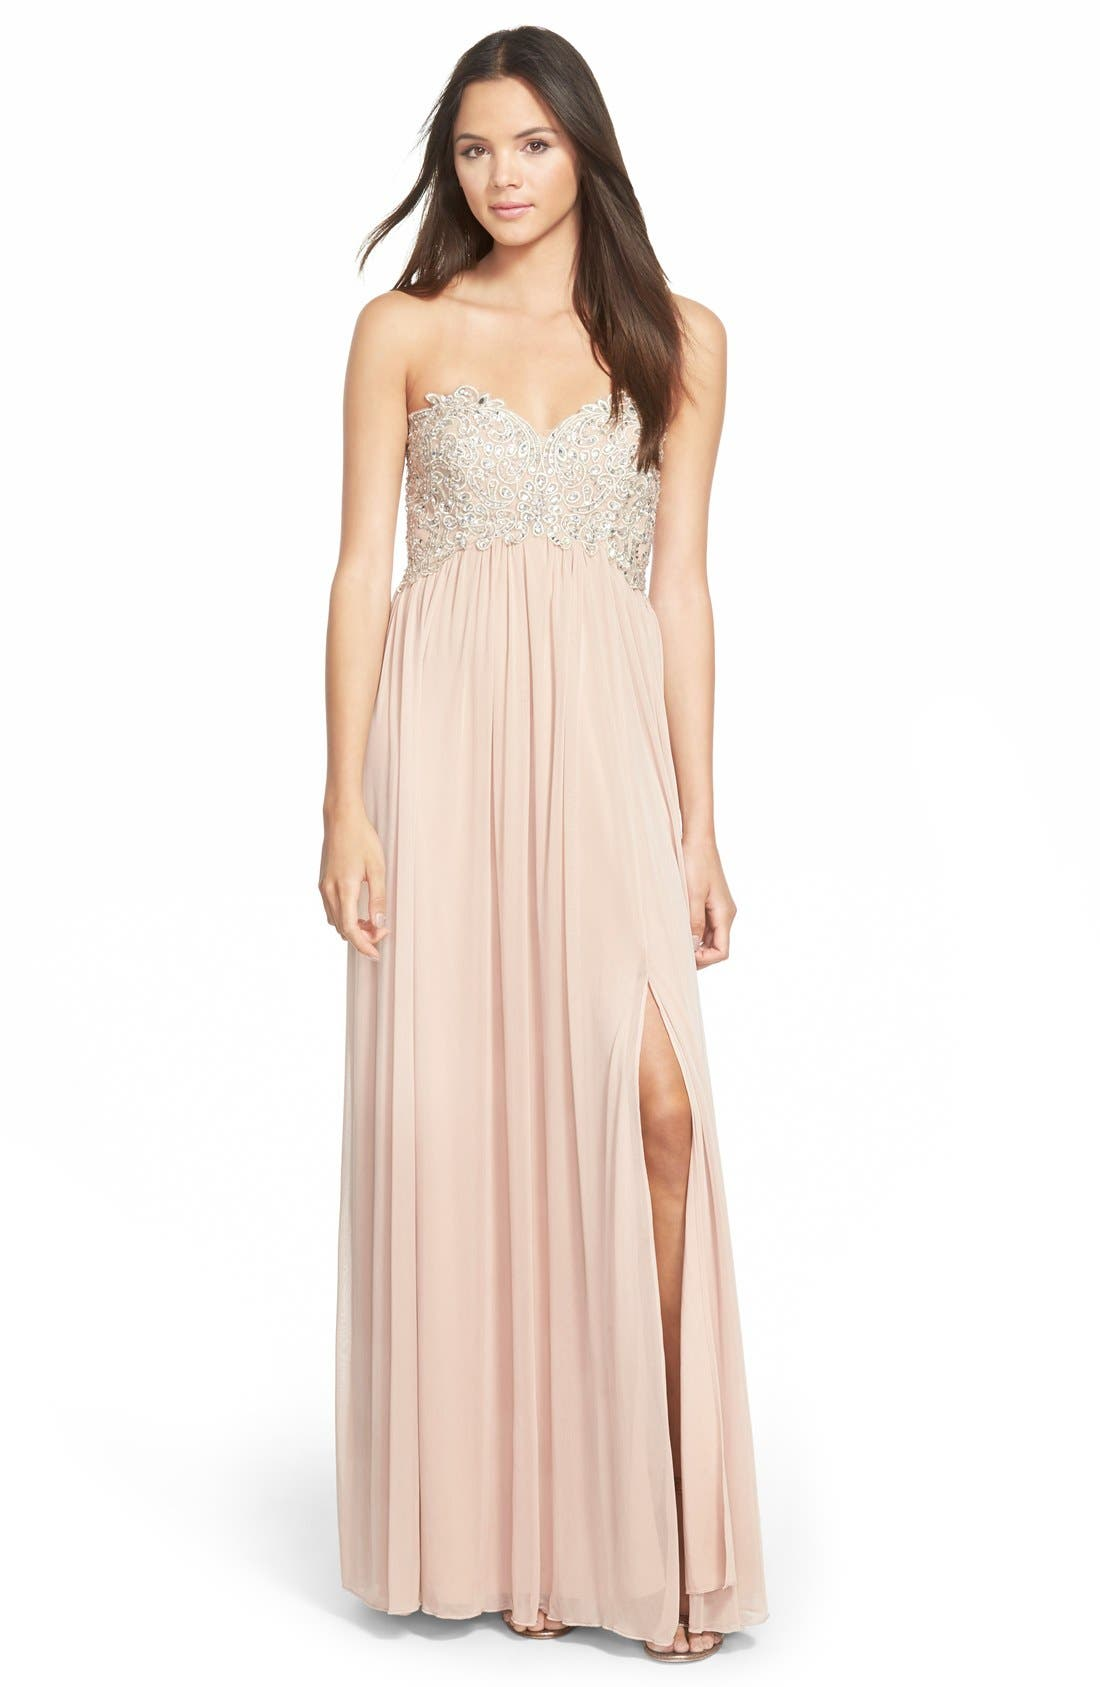 Alternate Image 1 Selected - Sequin Hearts Strapless Embellished Gown